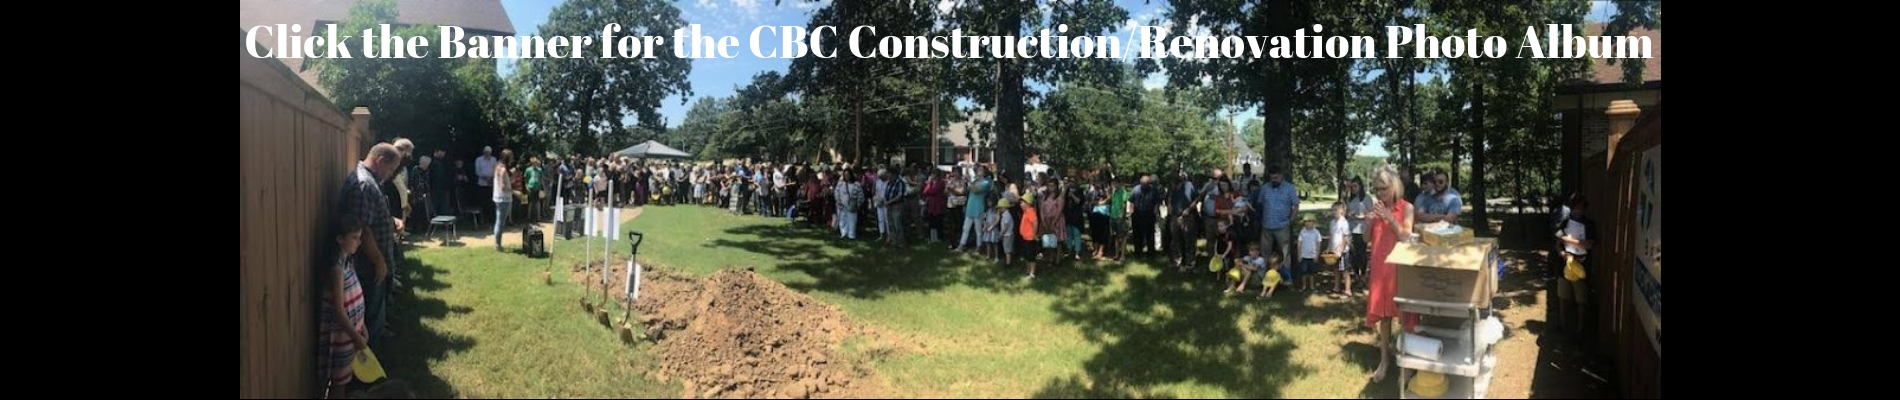 Click the Banner for the CBC Building_Renovation Photo Album